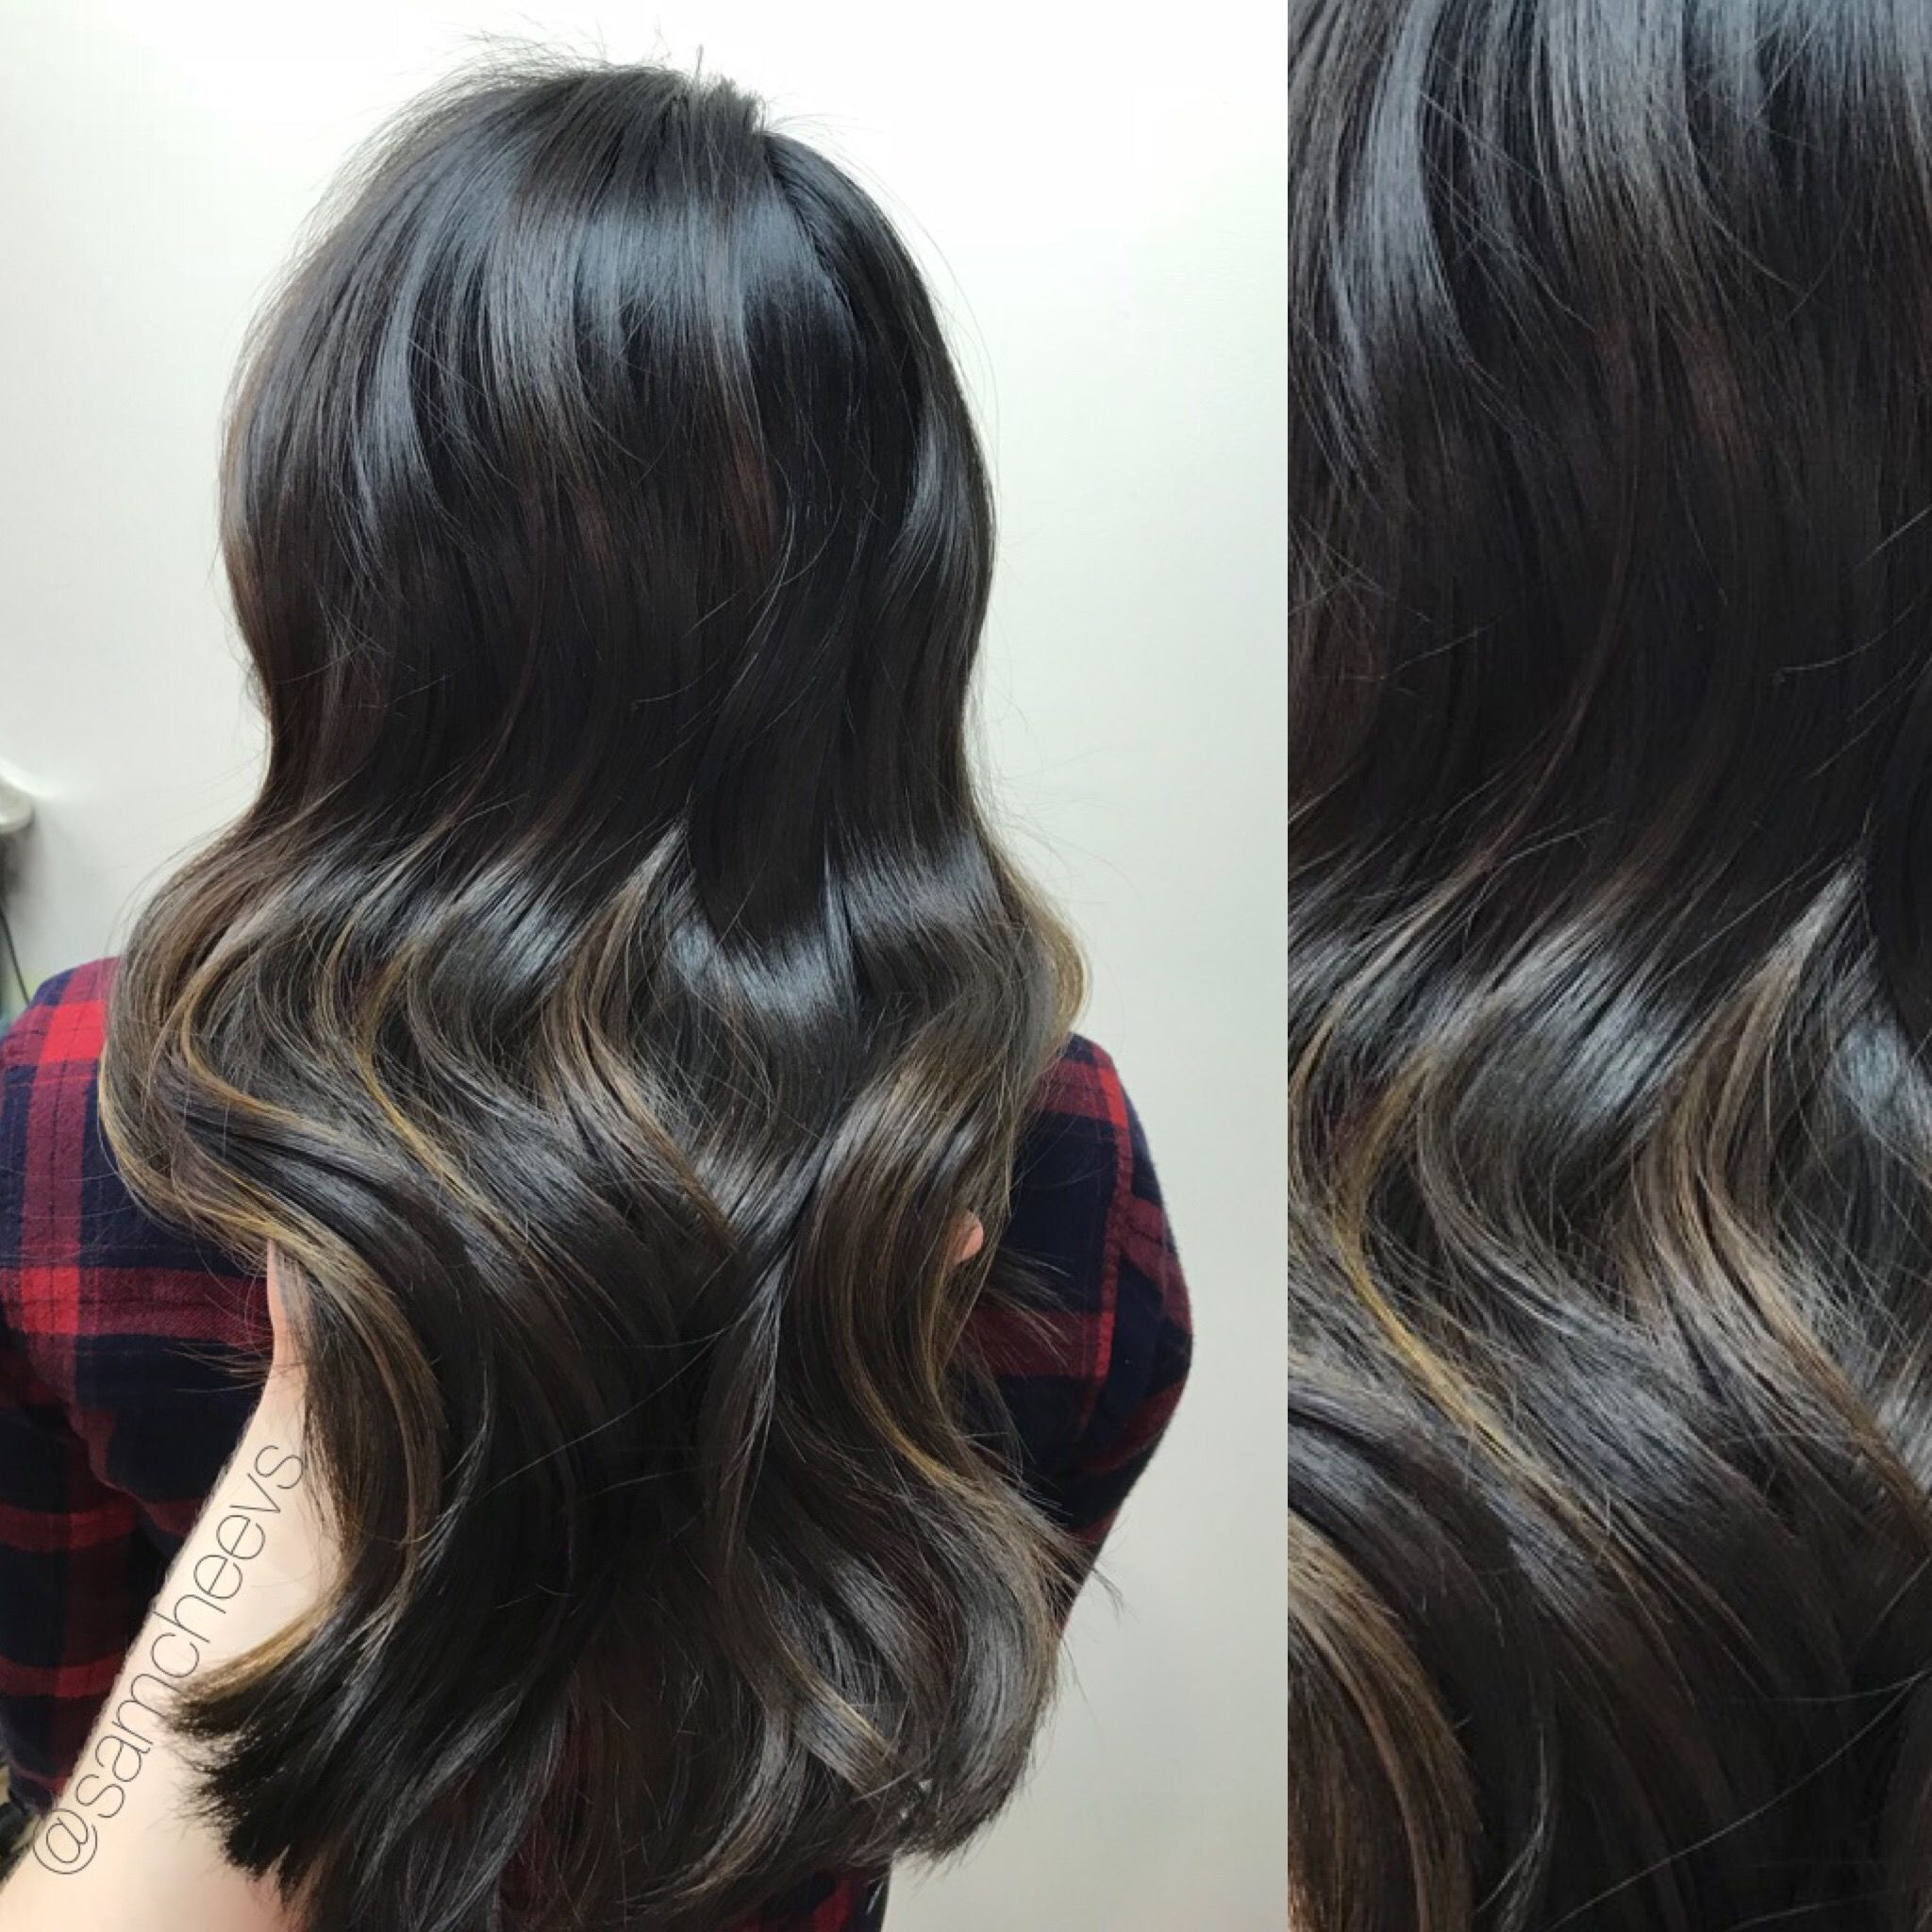 Brown Highlights For Dark Brown And Black Hair Types Color For Asian Hair Indian Latina Hispanic Eth Asian Hair Balayage Hair Brunette Long Hair Type